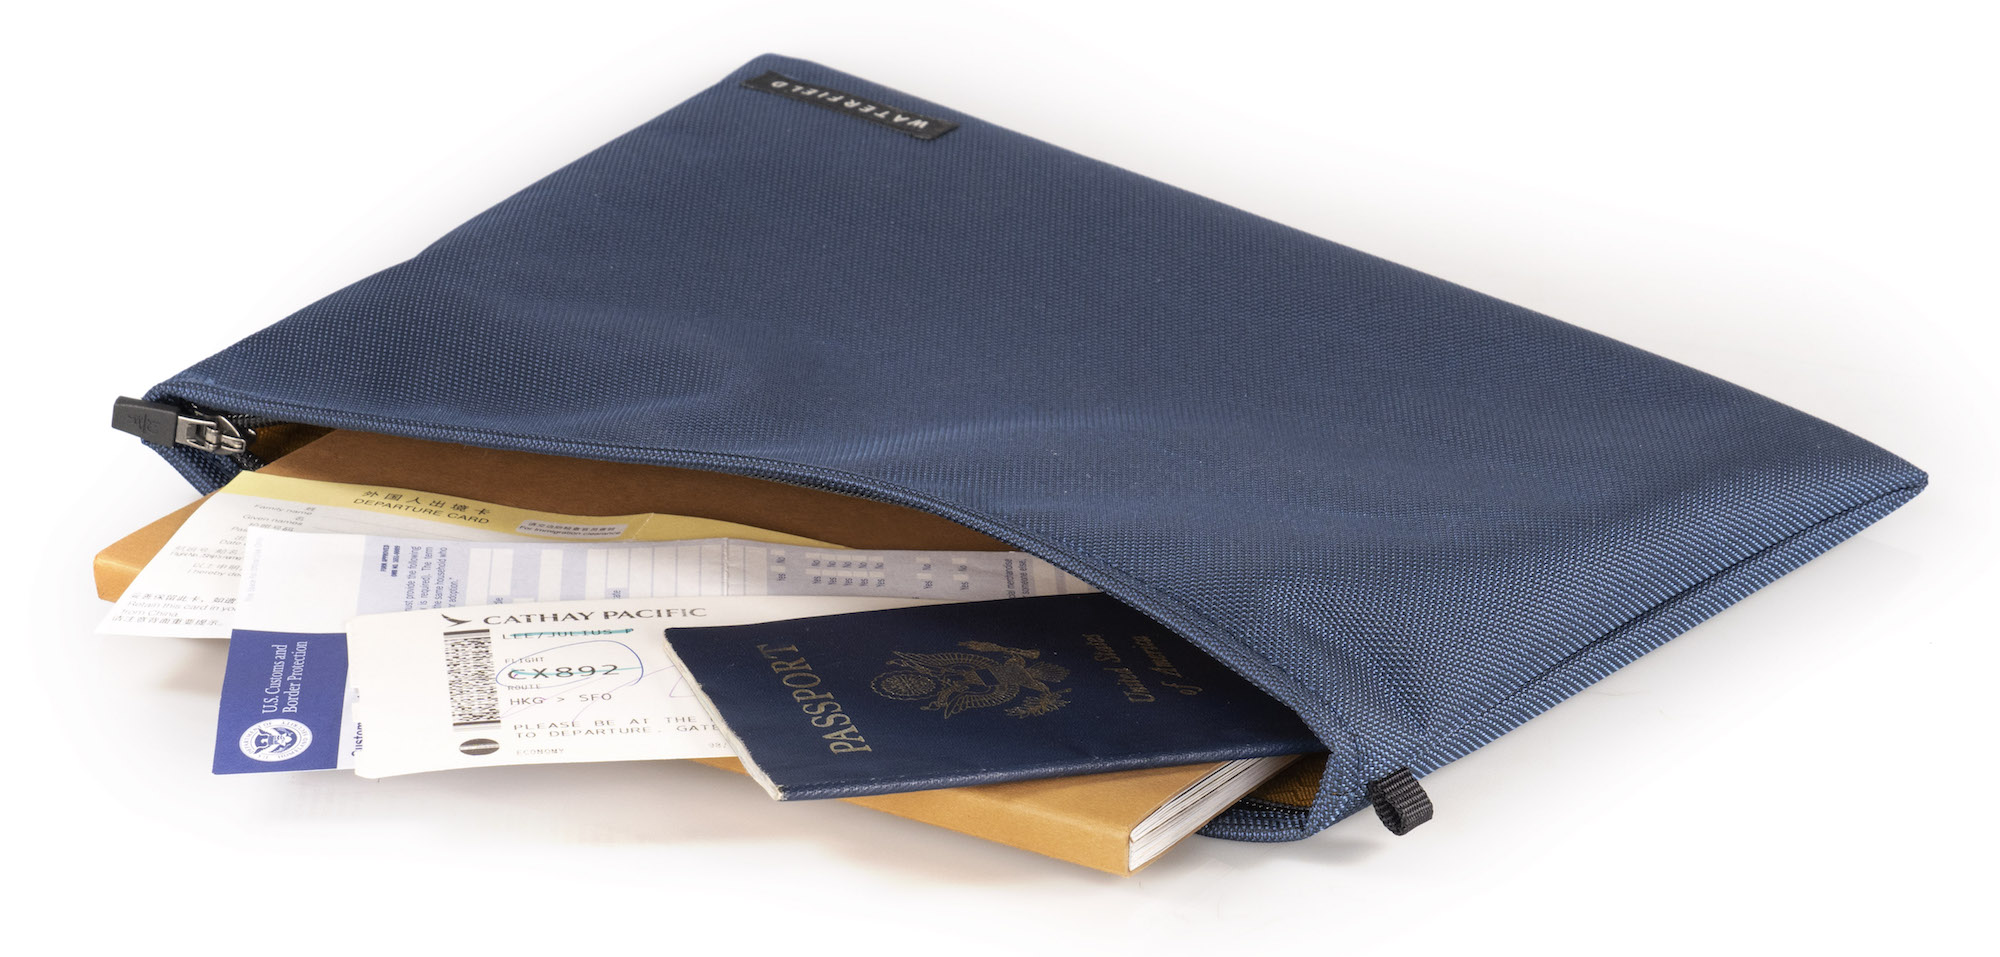 Waterfield's new Travel Folio now up for pre-order